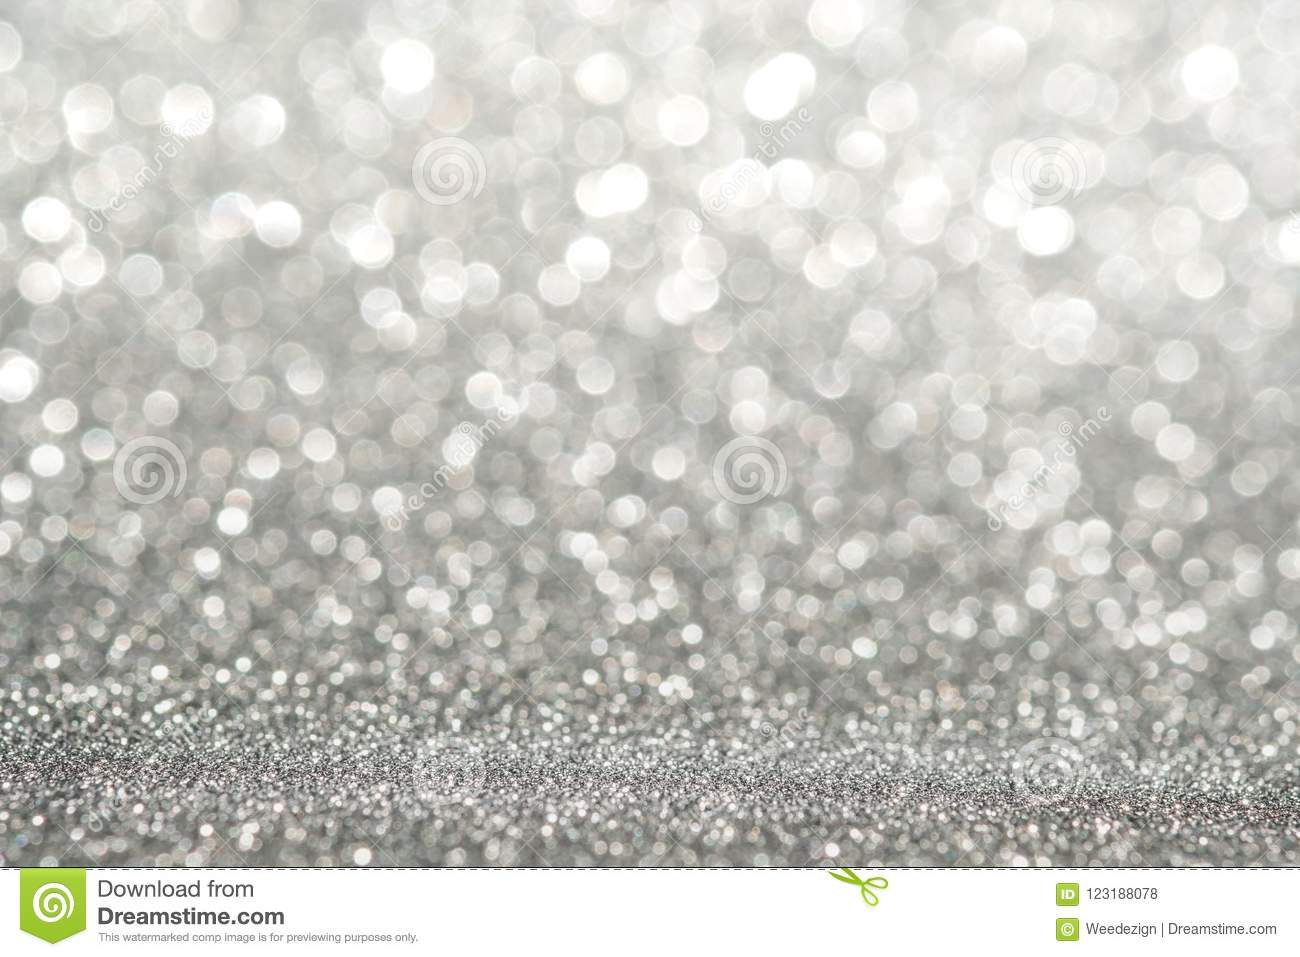 Abstract light silver sparkling glitter wall Abstract light silver sparkling glitter wall and floor perspective background studio